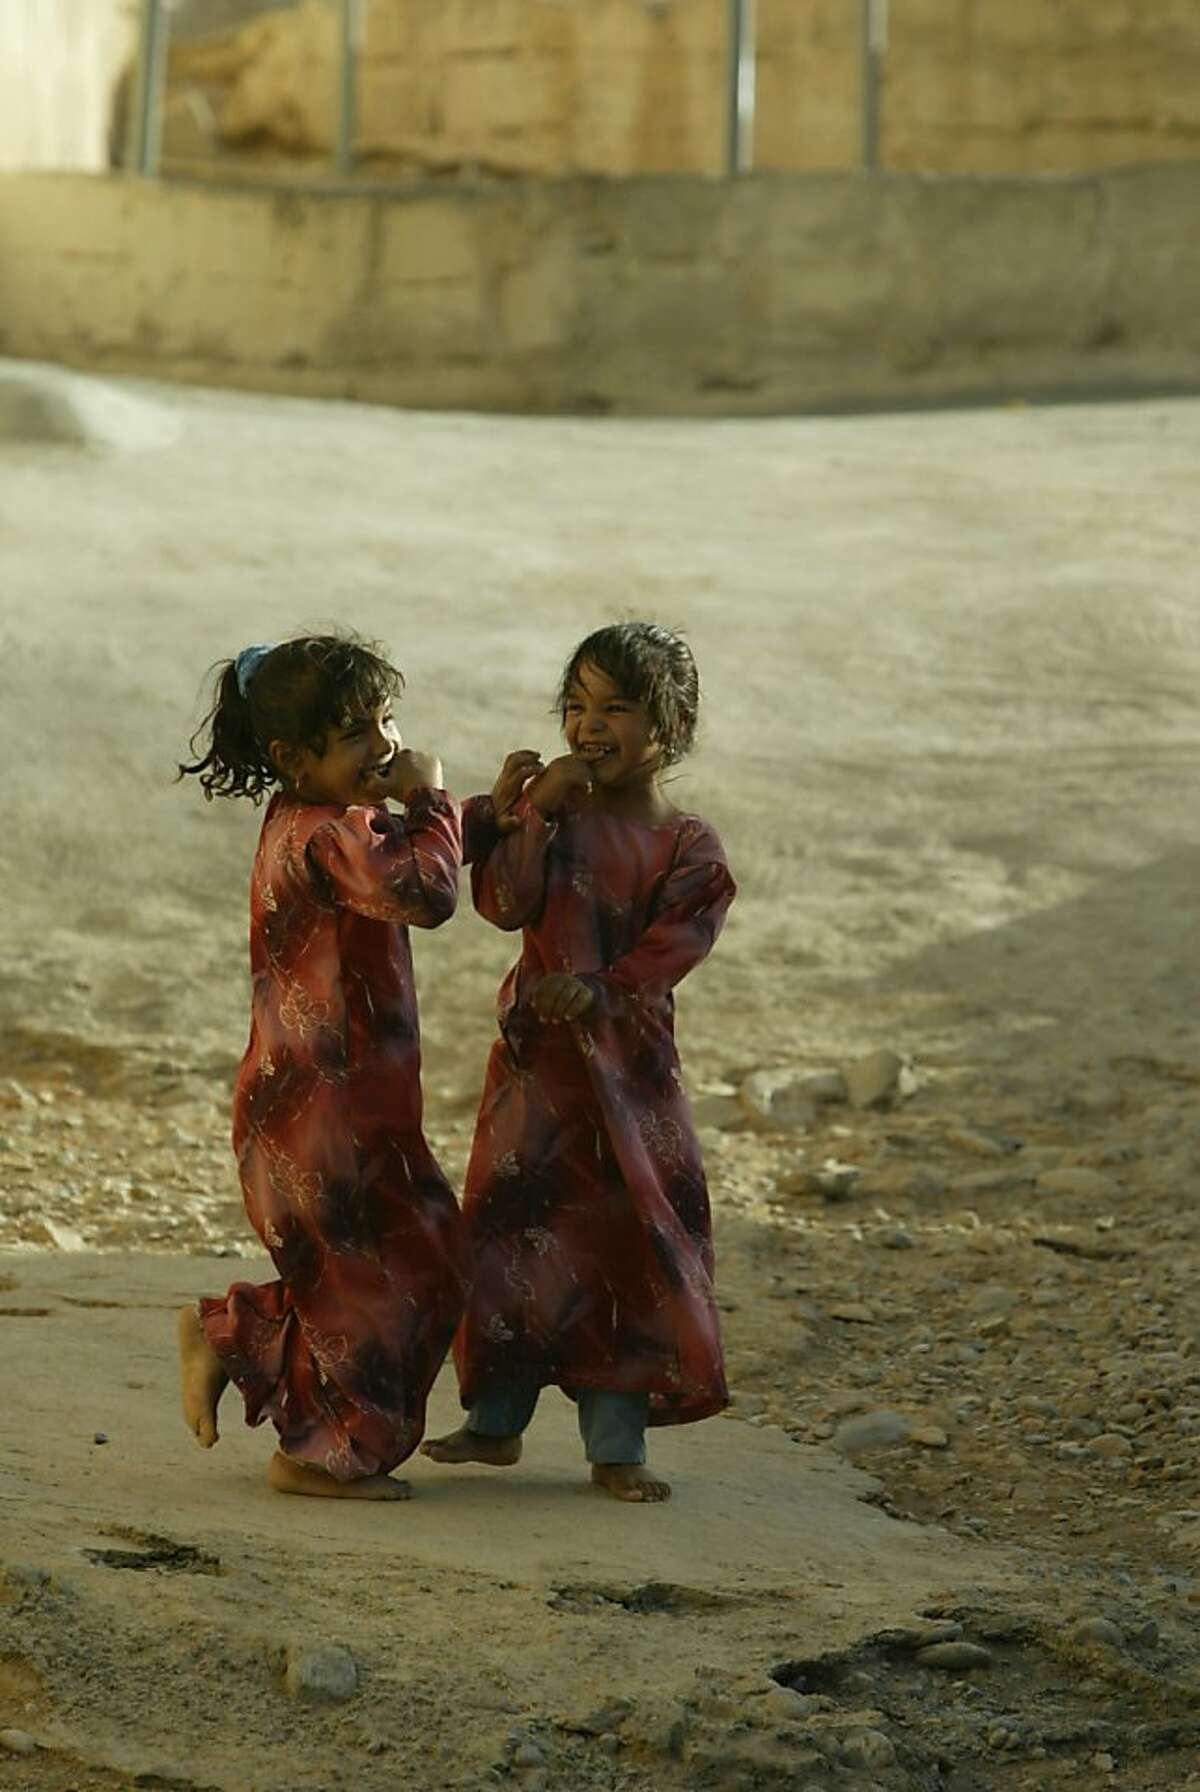 TRAVEL OMAN -- Sisters in colorful clothes practice being adorable for the camera in the ancient mud-brick city of Al Hamra. Spud Hilton / The Chronicle